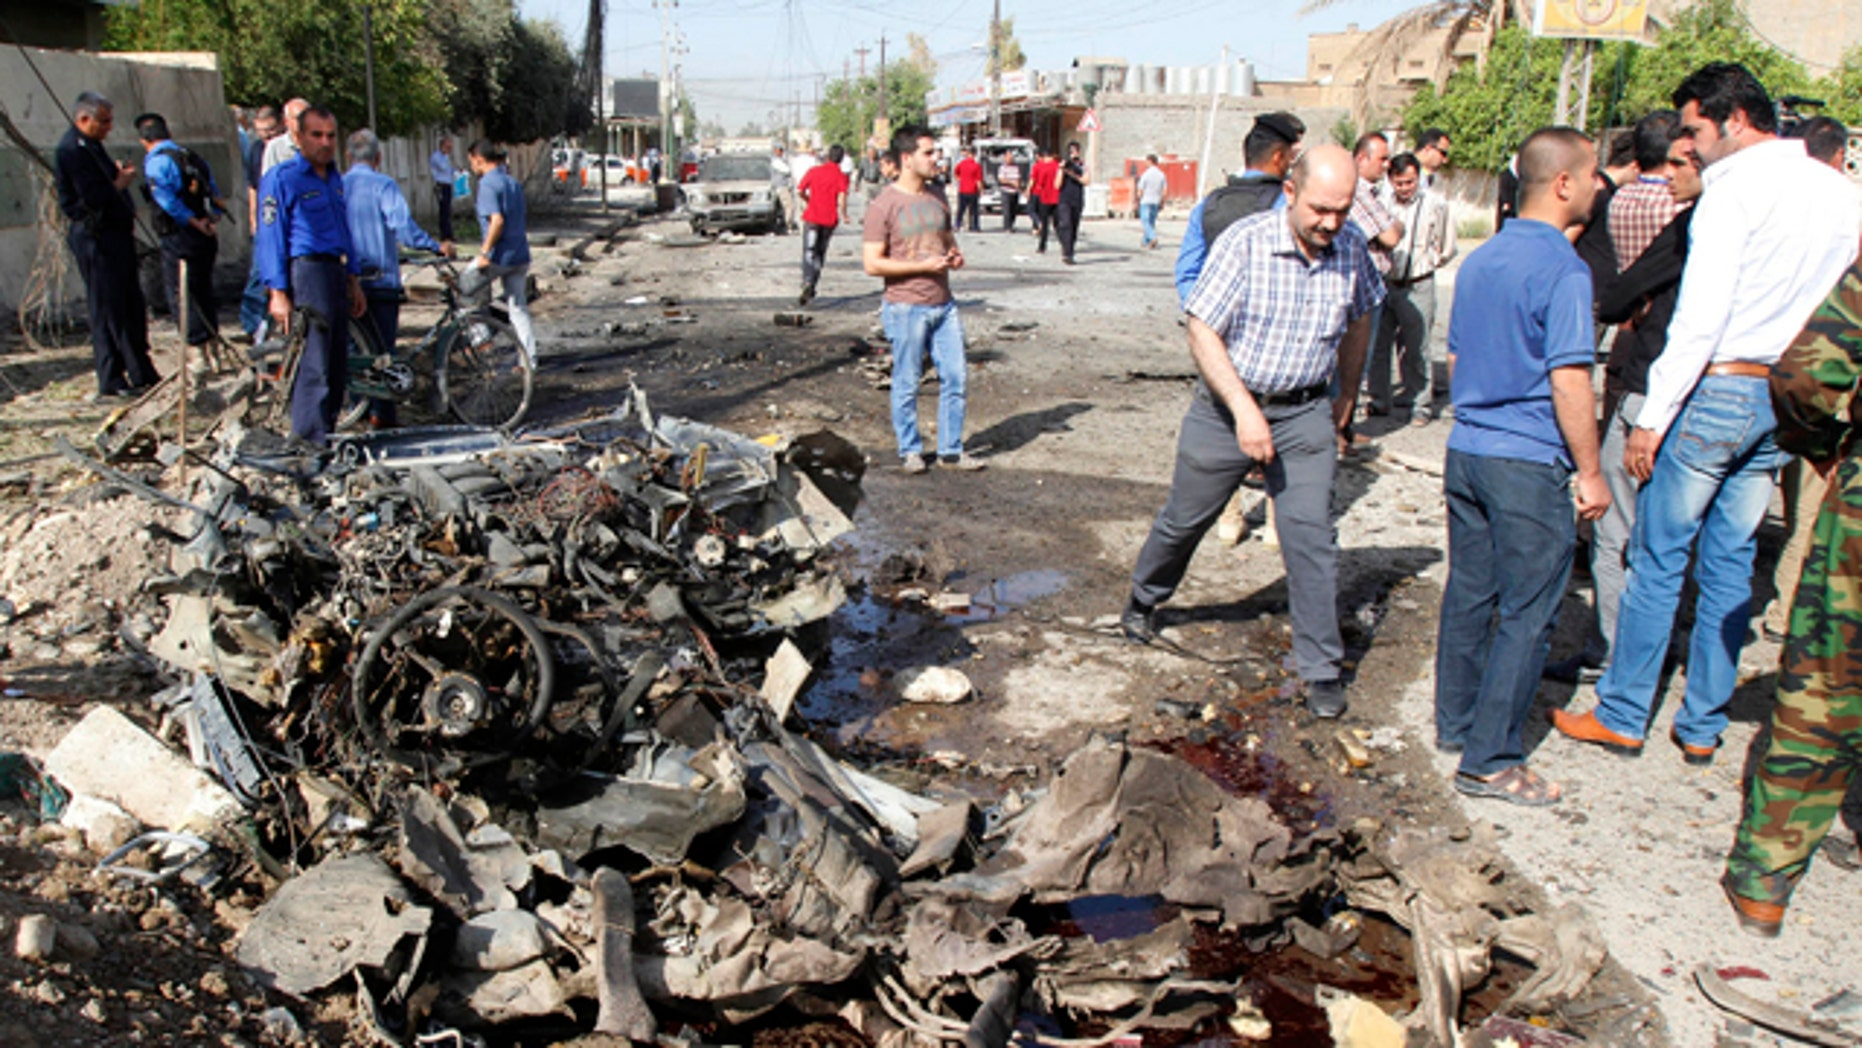 April 15, 2013: Iraqi security personnel are seen at the site of a bomb attack in Kirkuk.